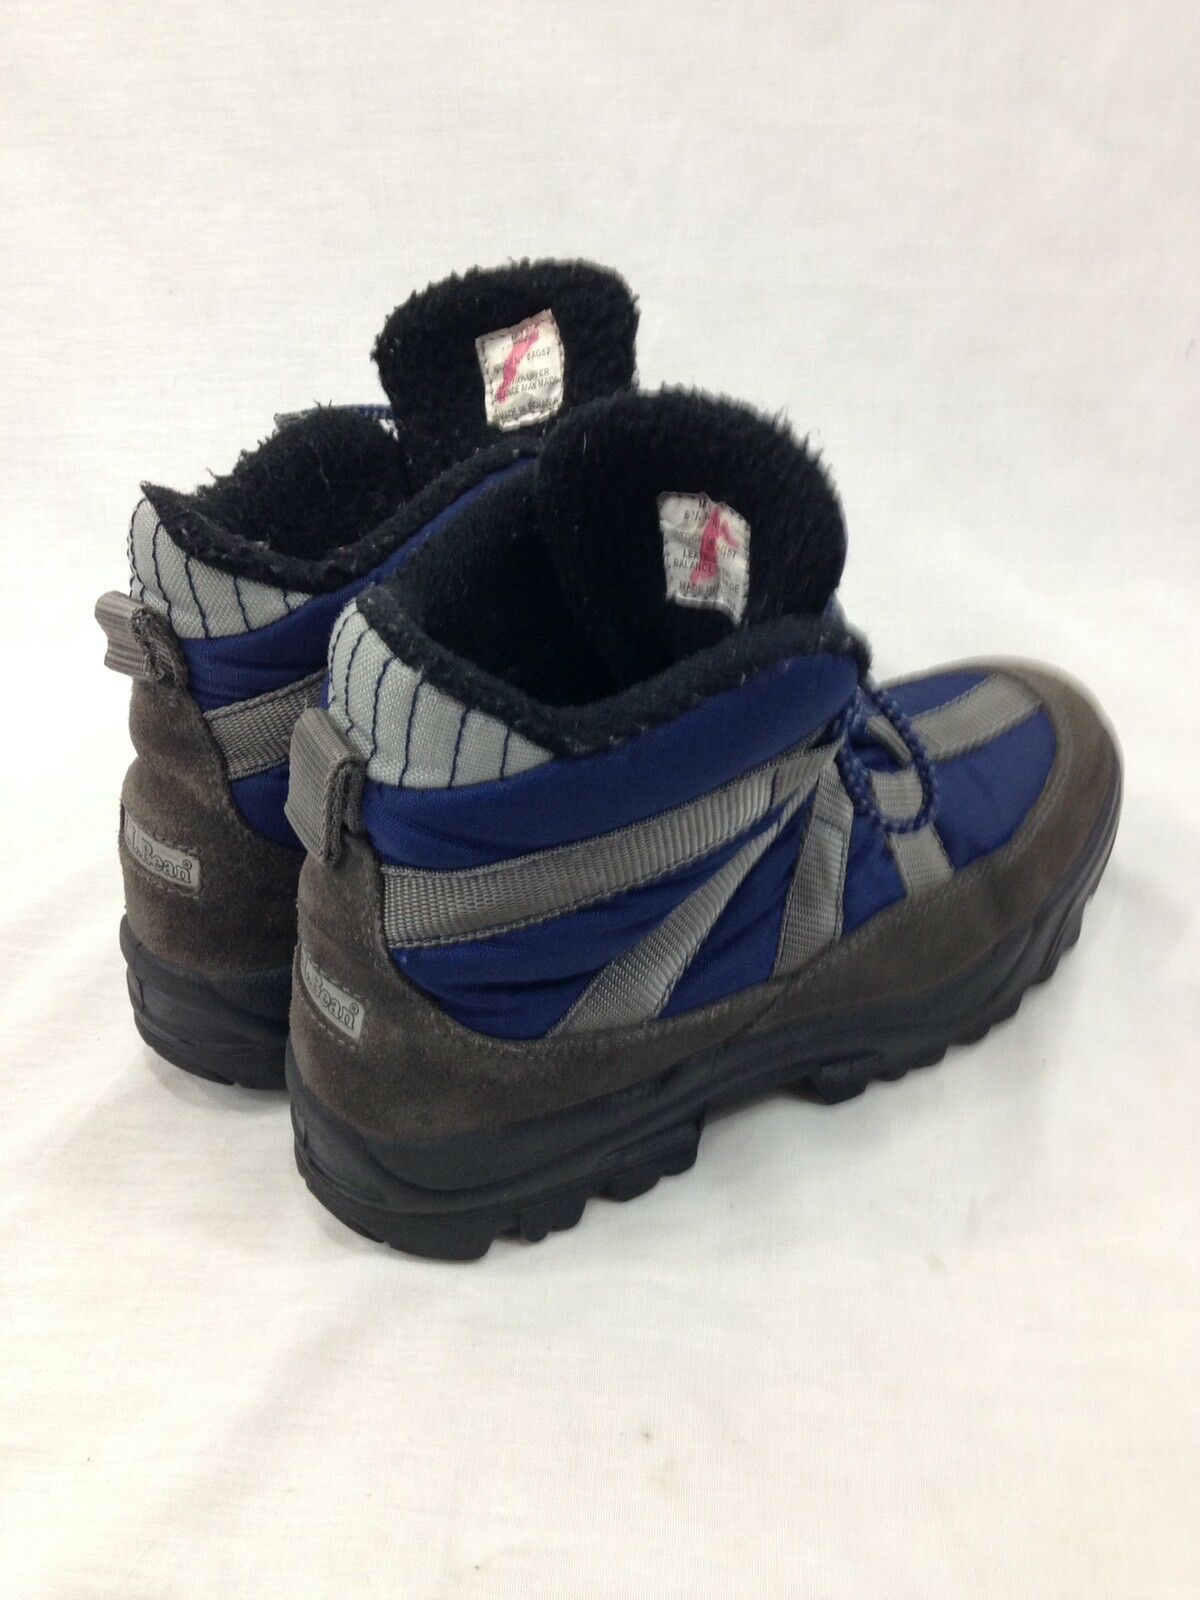 VTG LL Blue Bean Hiking Stivali Uomo 8.5 Medium Blue LL Gray Pelle Canvas Lace Up Winter 4ec616